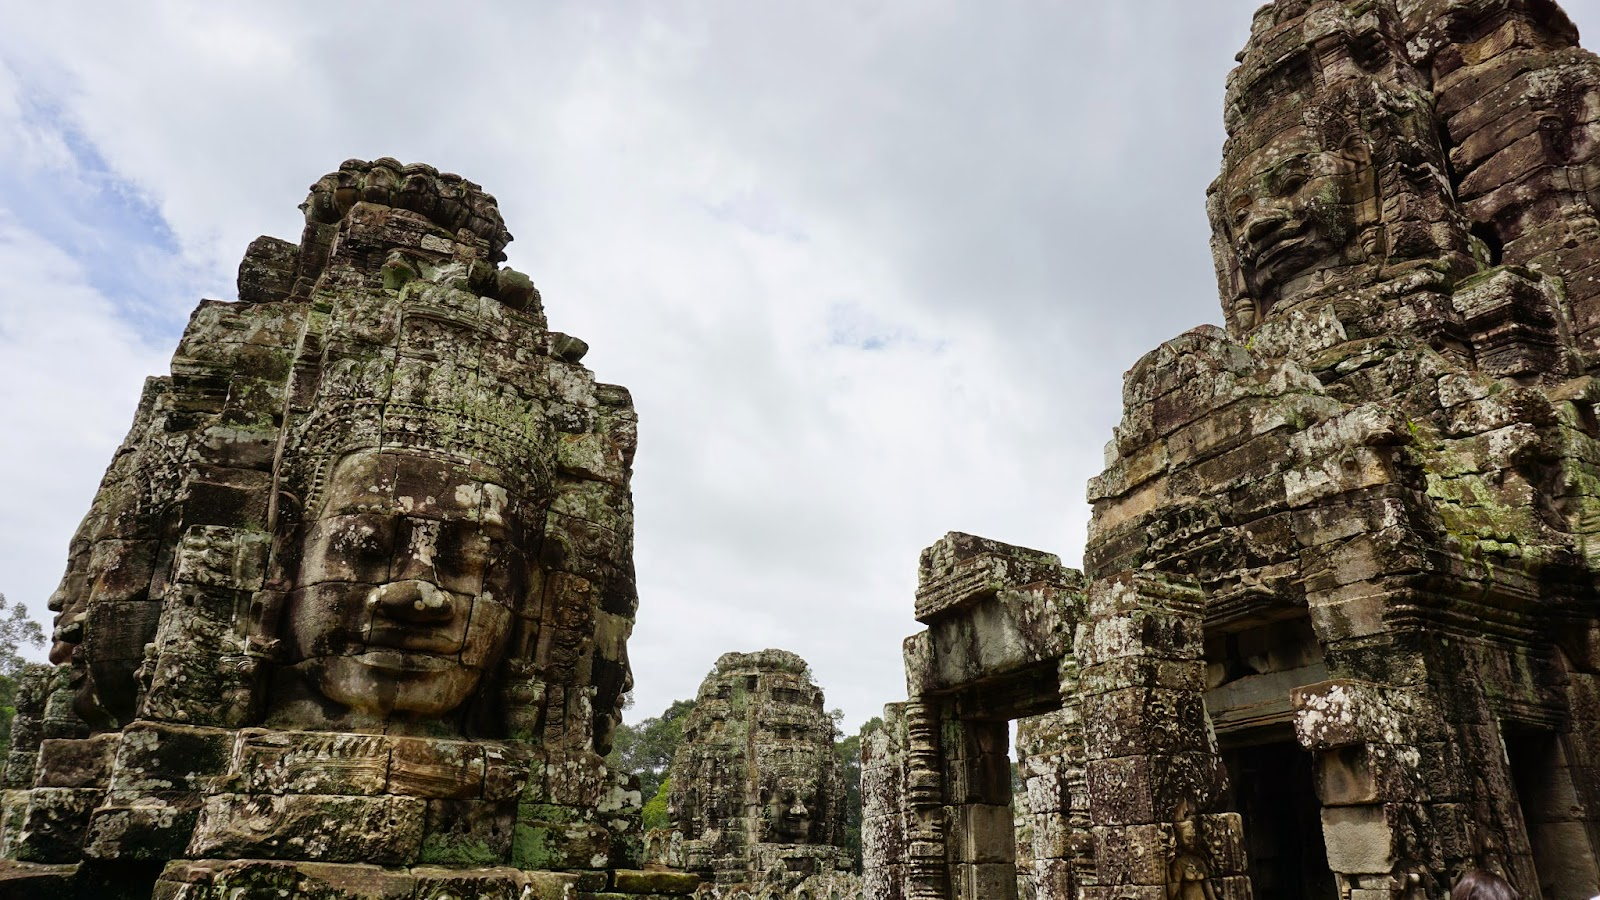 Prasat Bayon, the temple of many faces